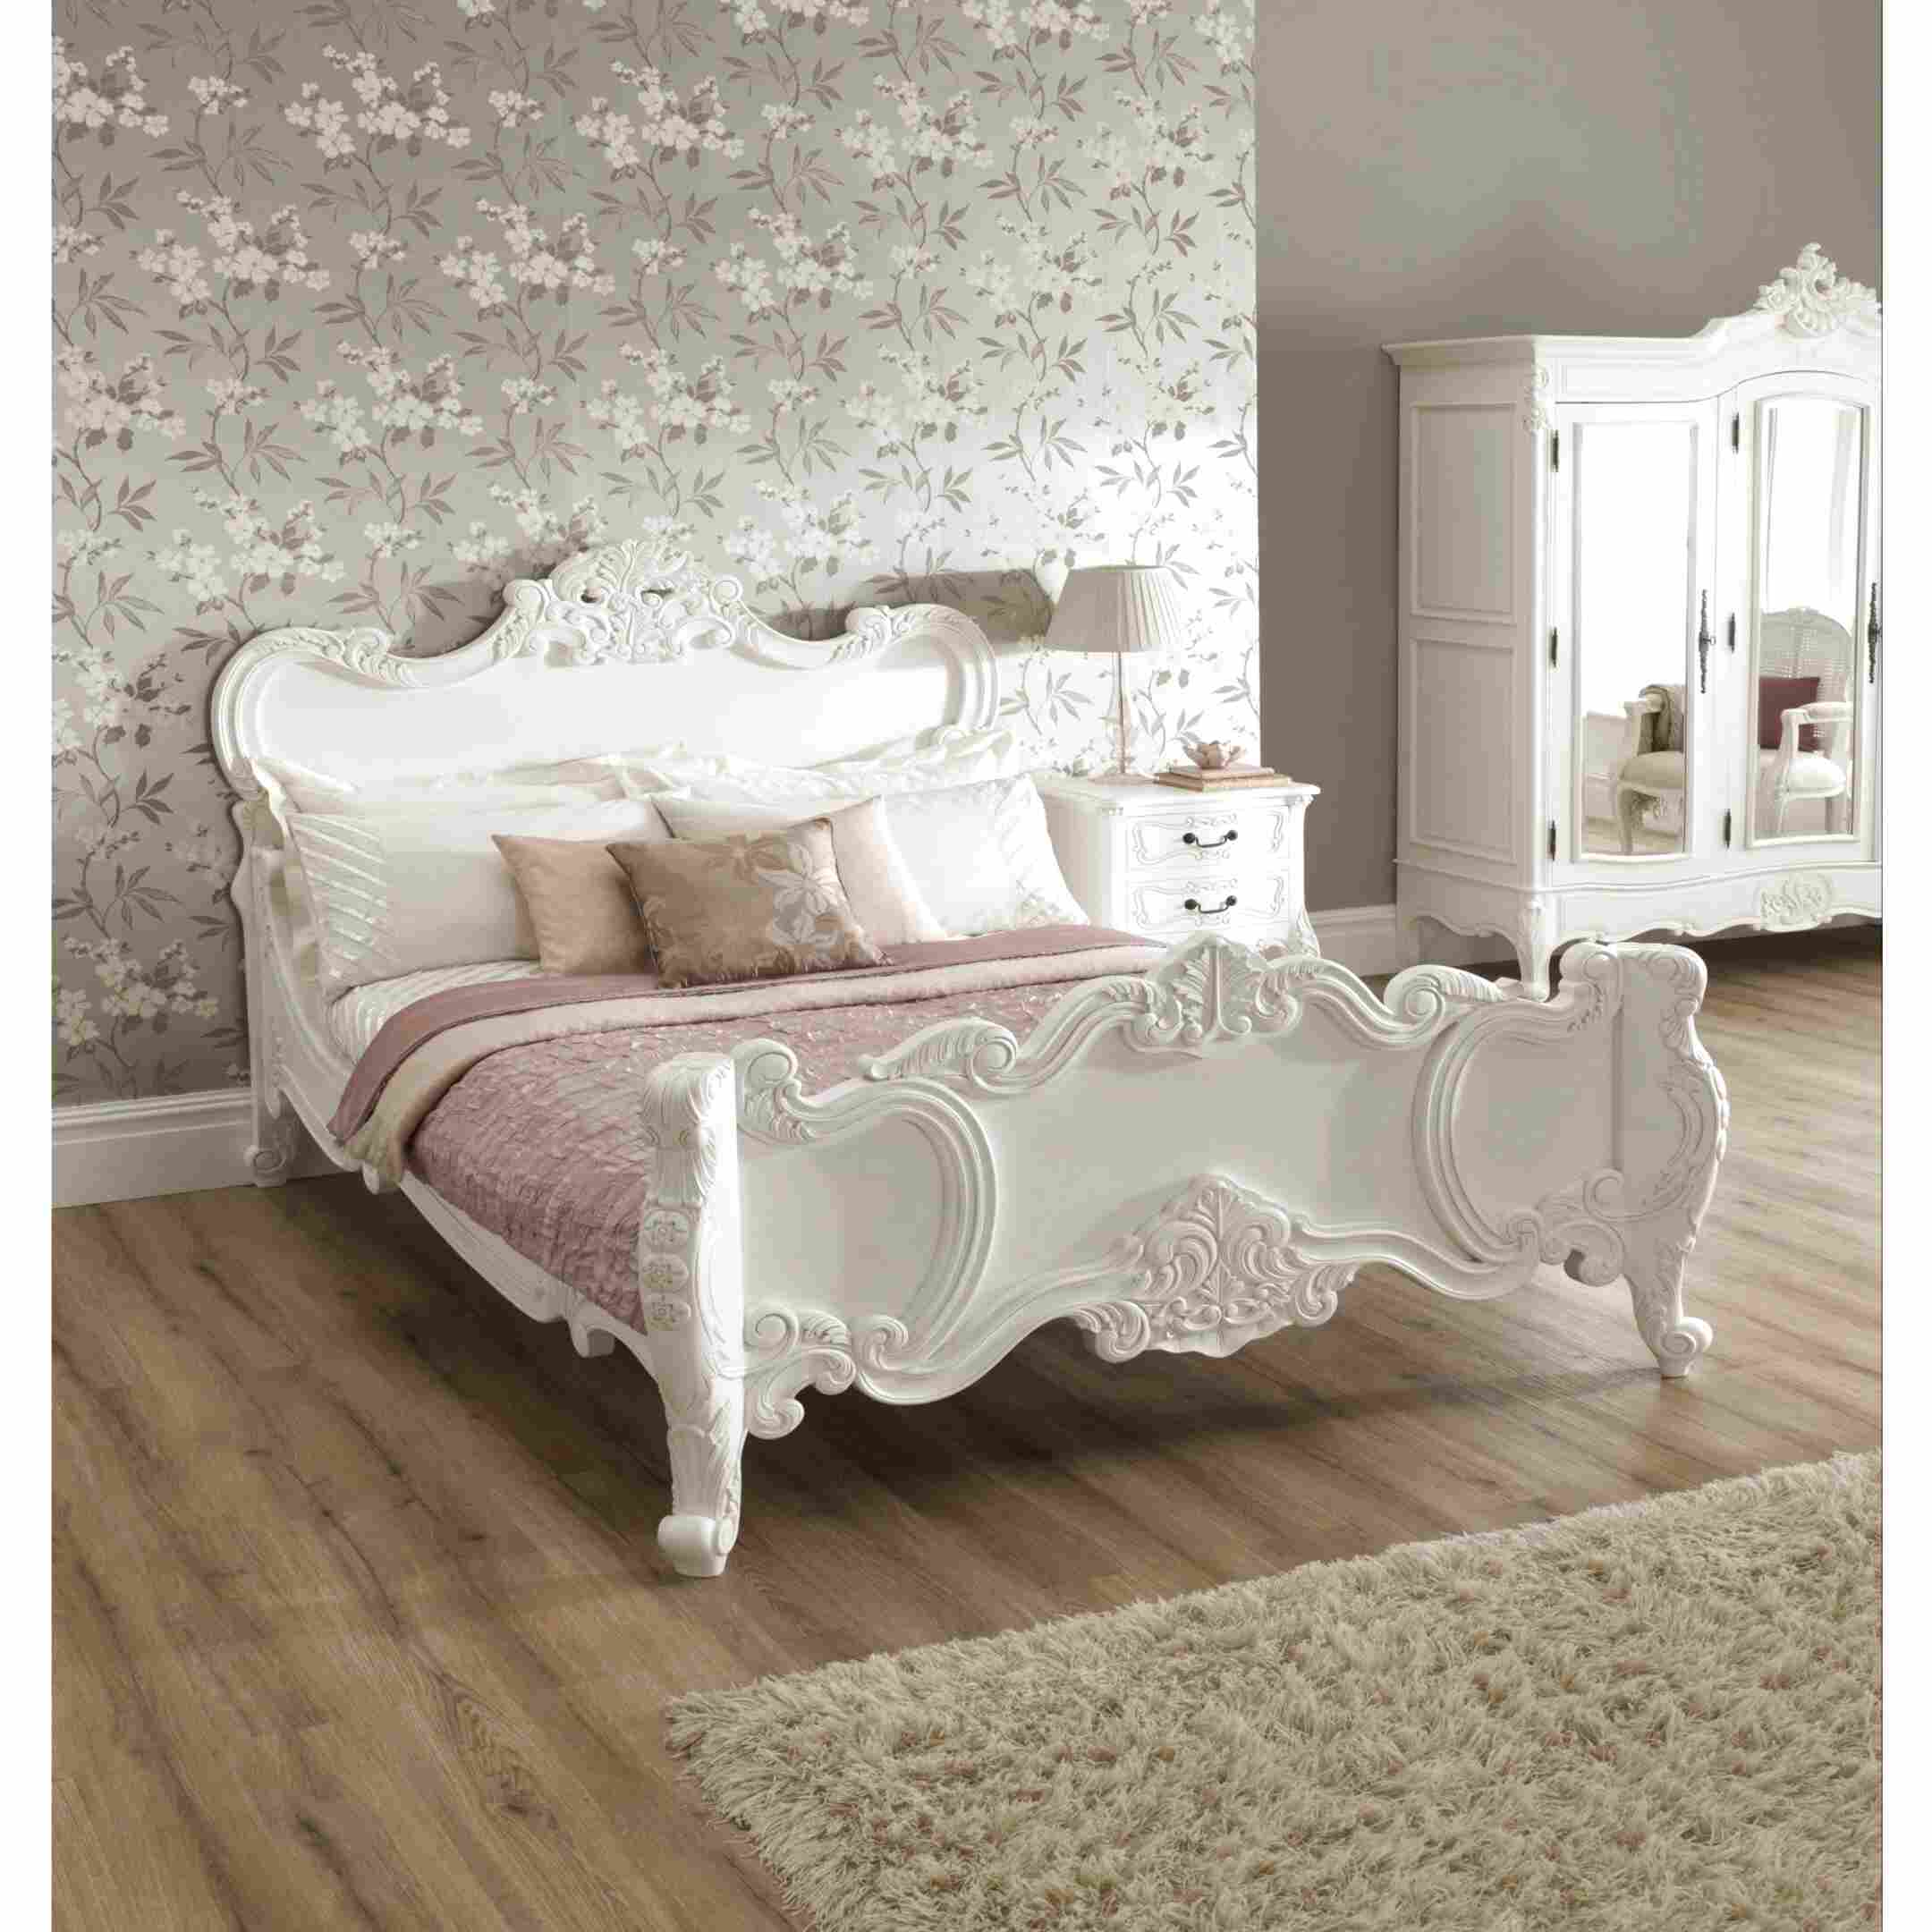 Picture of: Shabby Chic Bed For Sale In Uk 84 Used Shabby Chic Beds